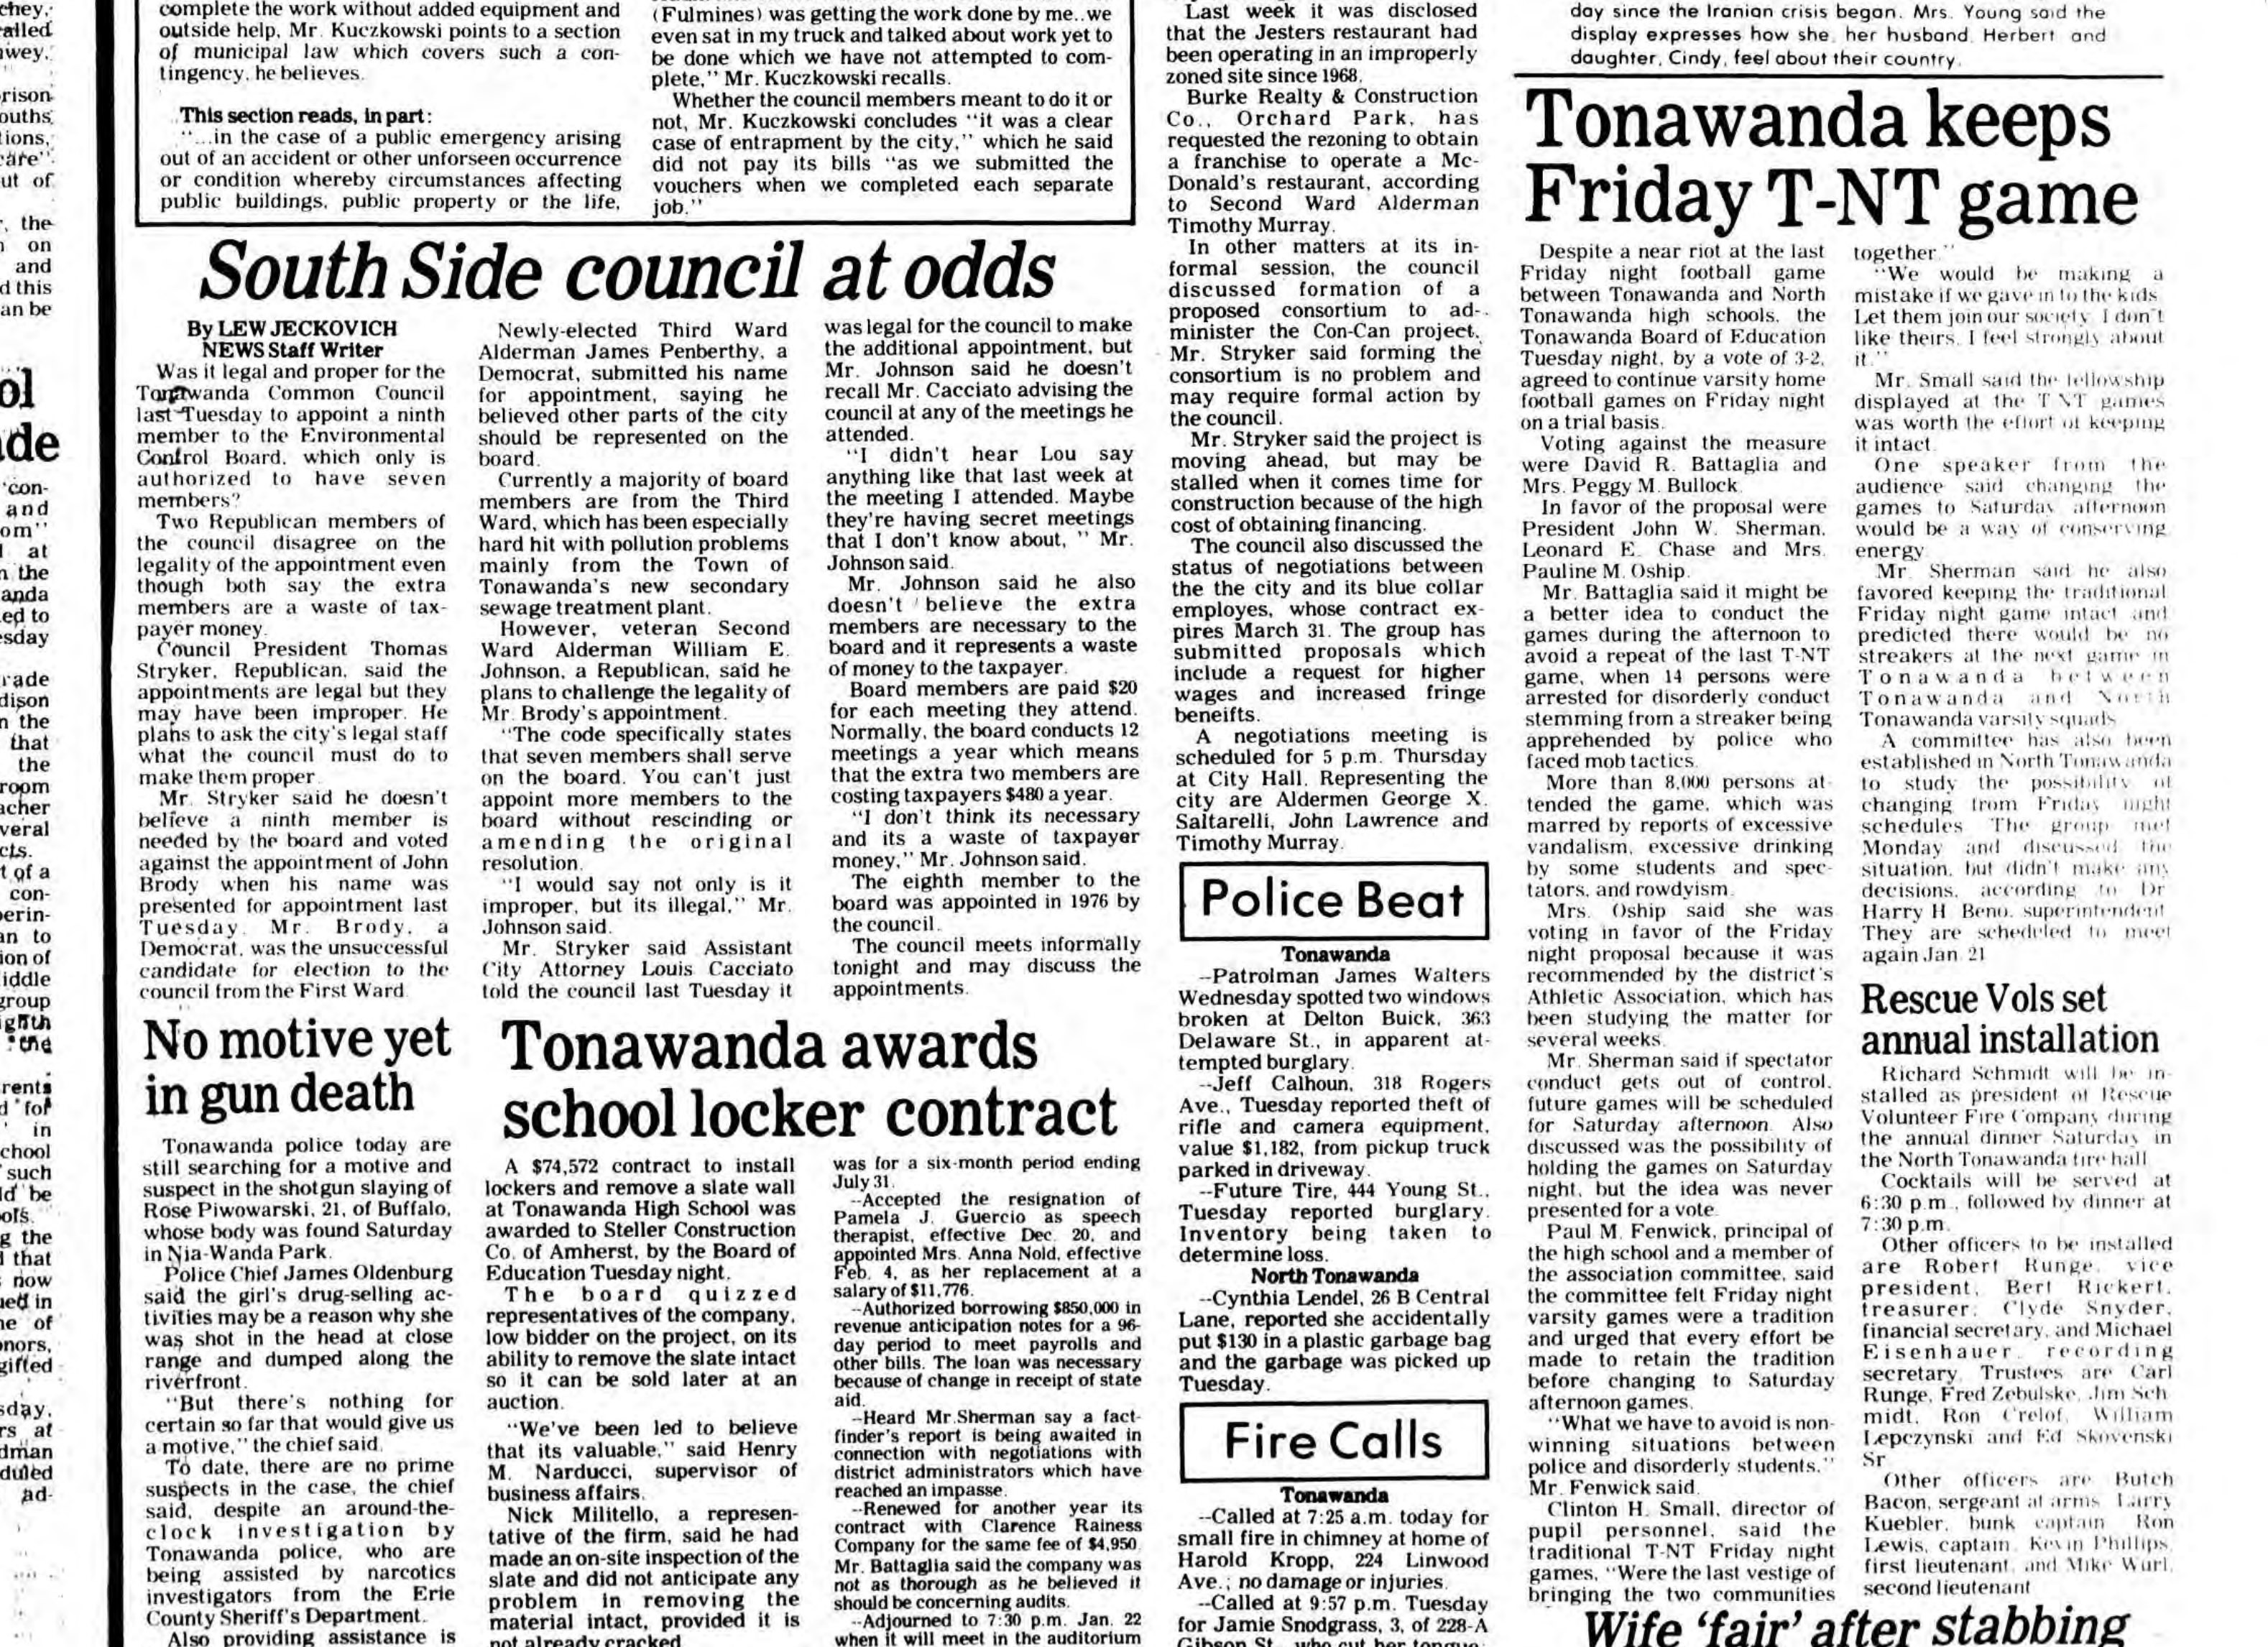 Tonawanda keeps Friday T-NT game, article (Tonawanda News, 1980-01-09).jpg